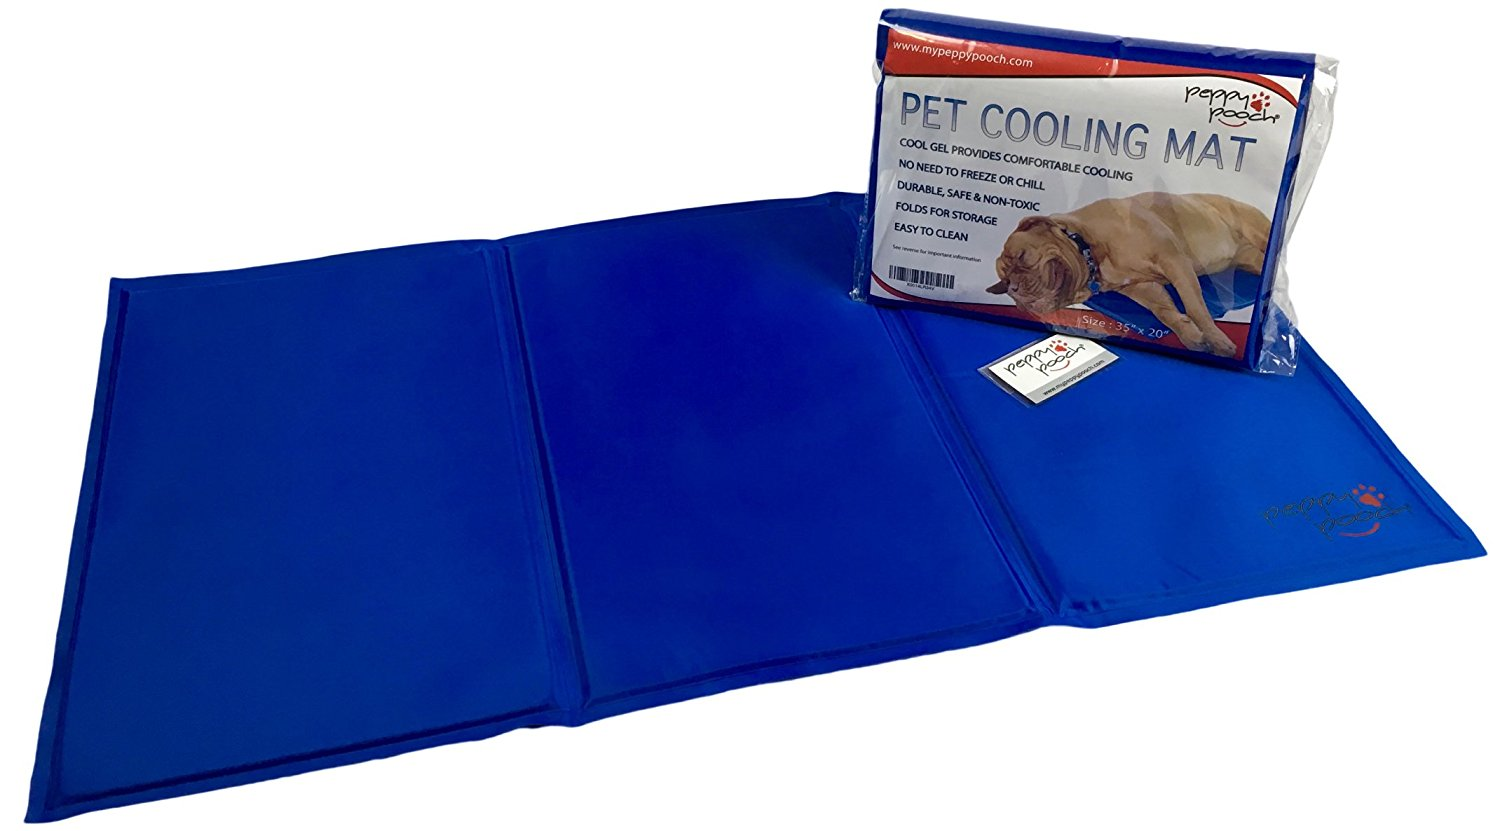 """Peppy Pooch Pet Cooling Mat - Soft Gel Comfort For Dogs. Durable, Safe, Non-Toxic & Easy To Clean. Large Size (35""""x 20"""")"""